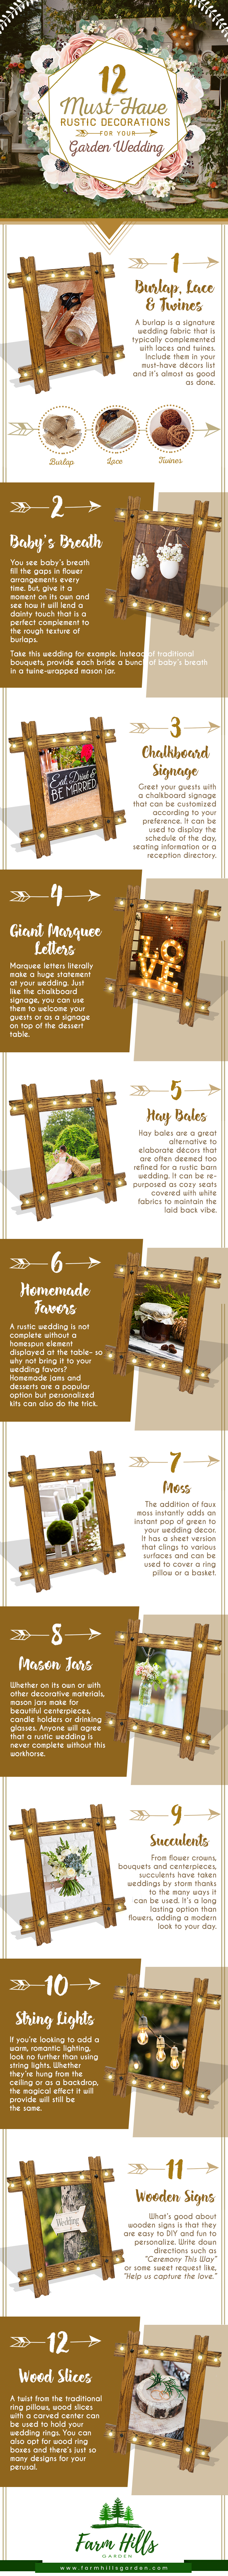 How to Create an Authentic Rustic Setting for Your Garden Wedding - Infographic